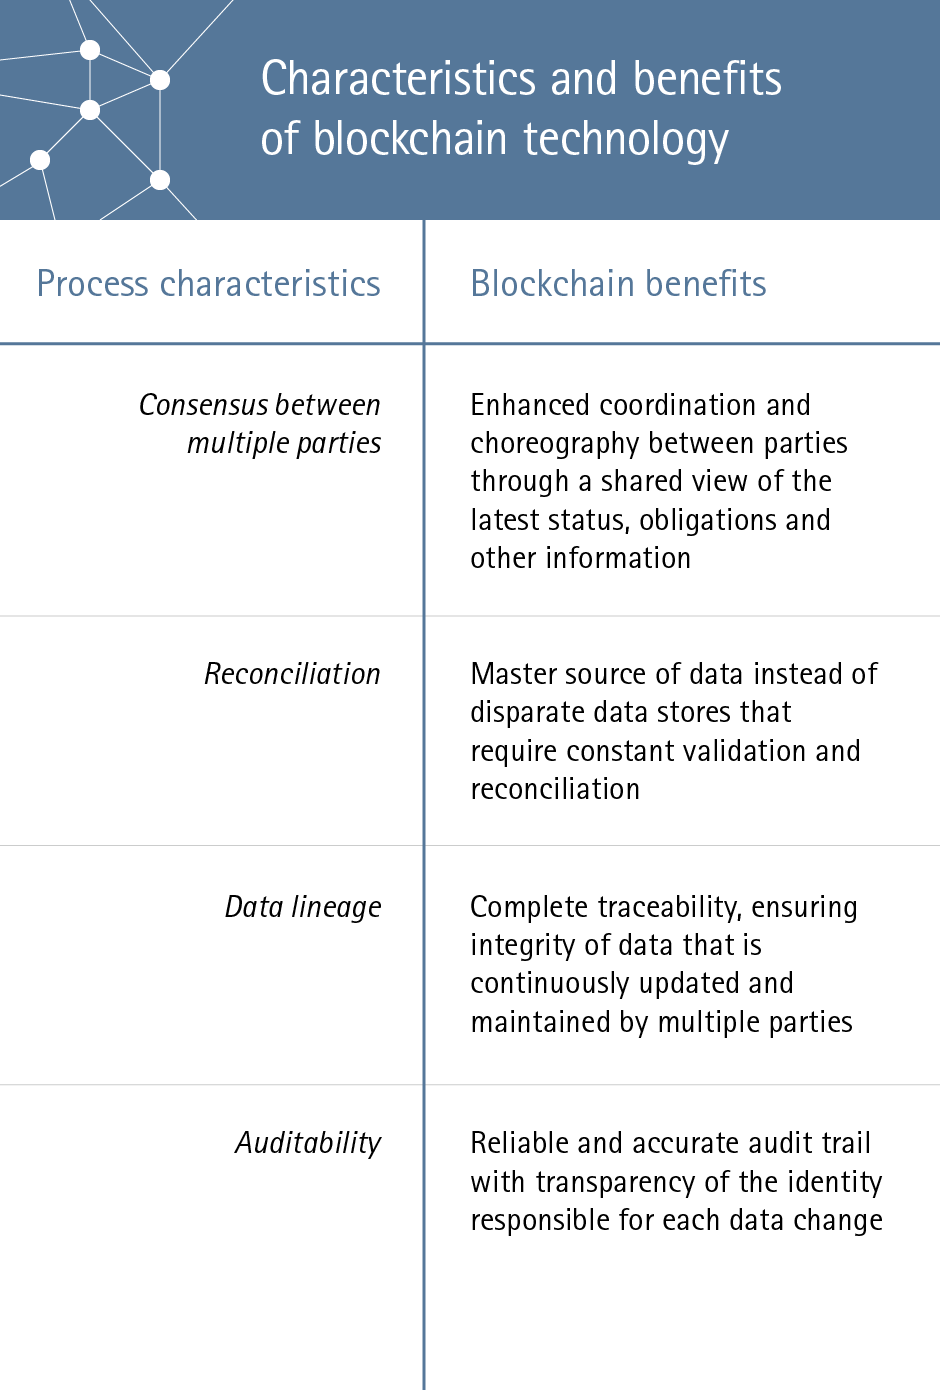 Characteristics and benefits of blockchain technology